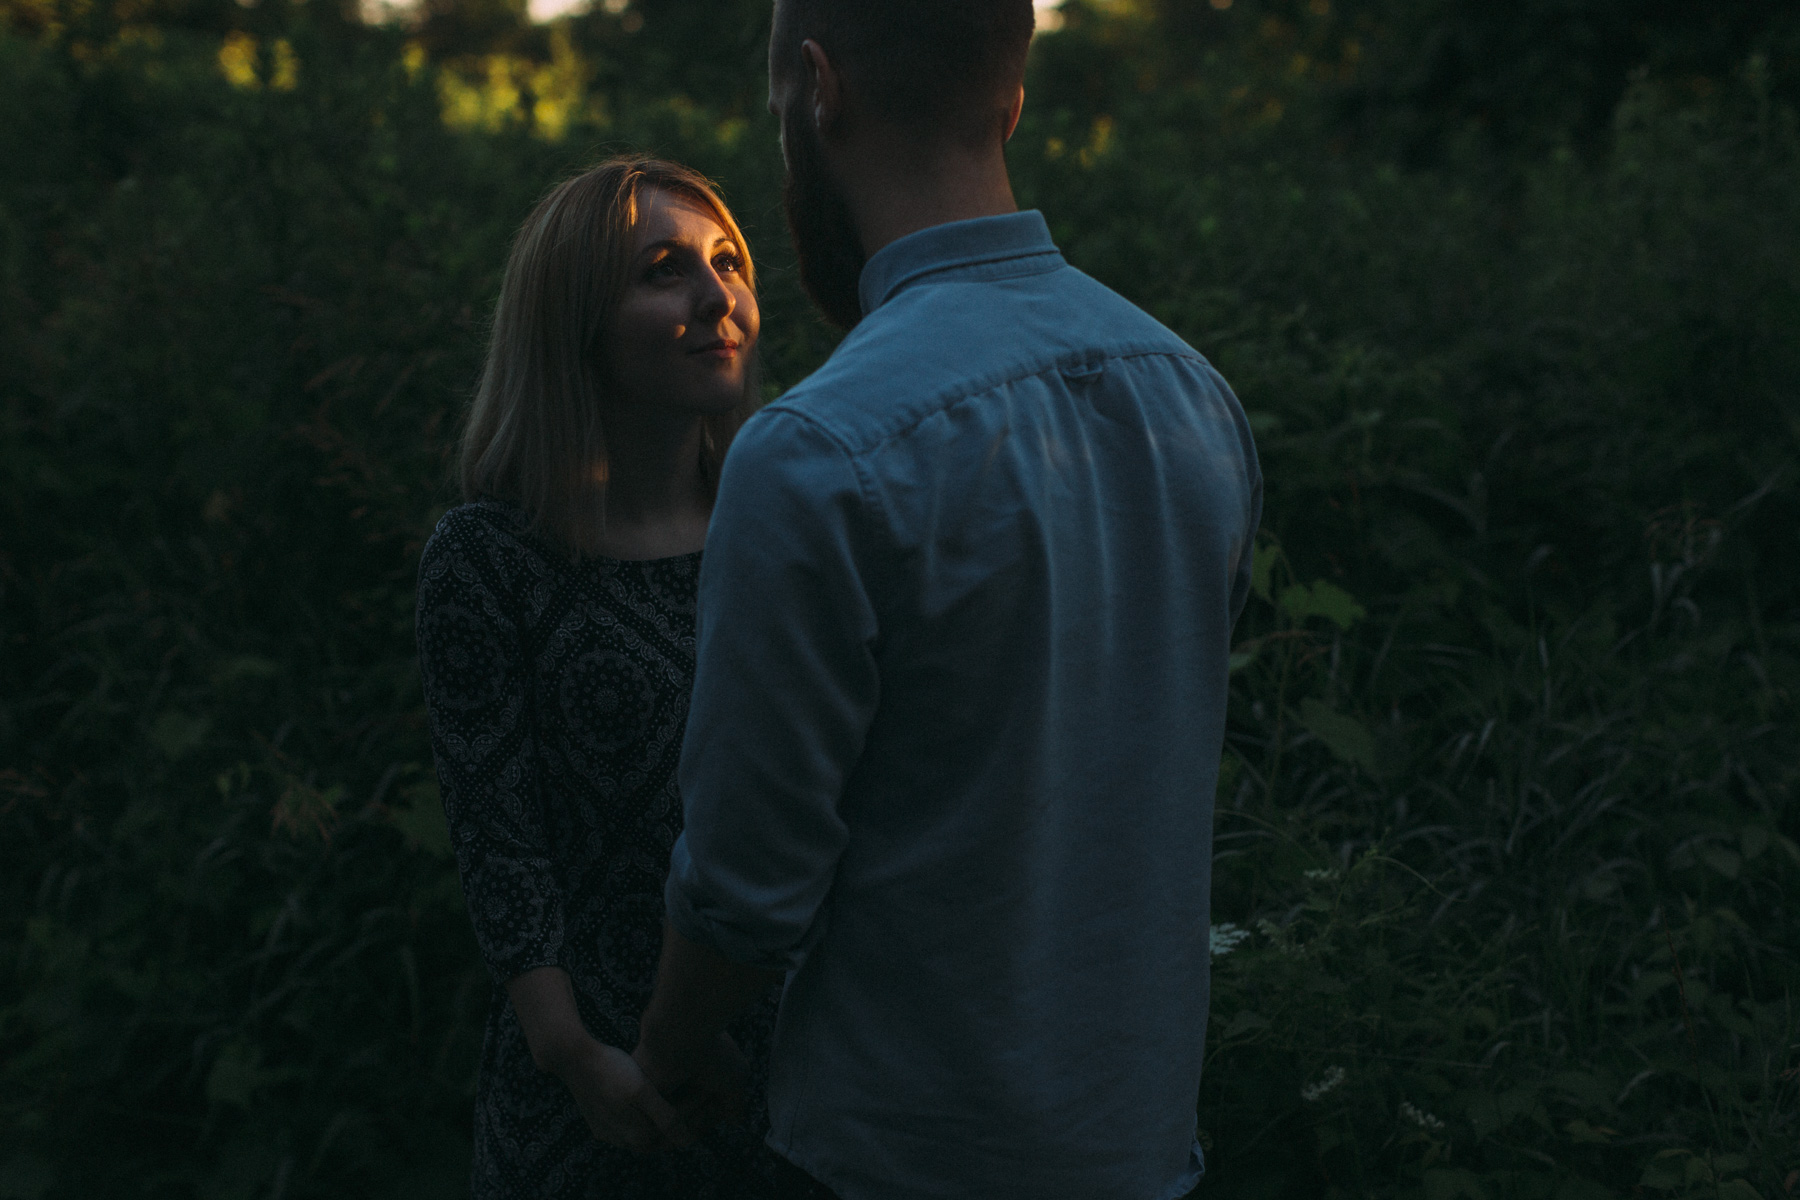 Adventure-engagement-photography-by-Sam-Wong-of-Artanis-Collective_013.jpg